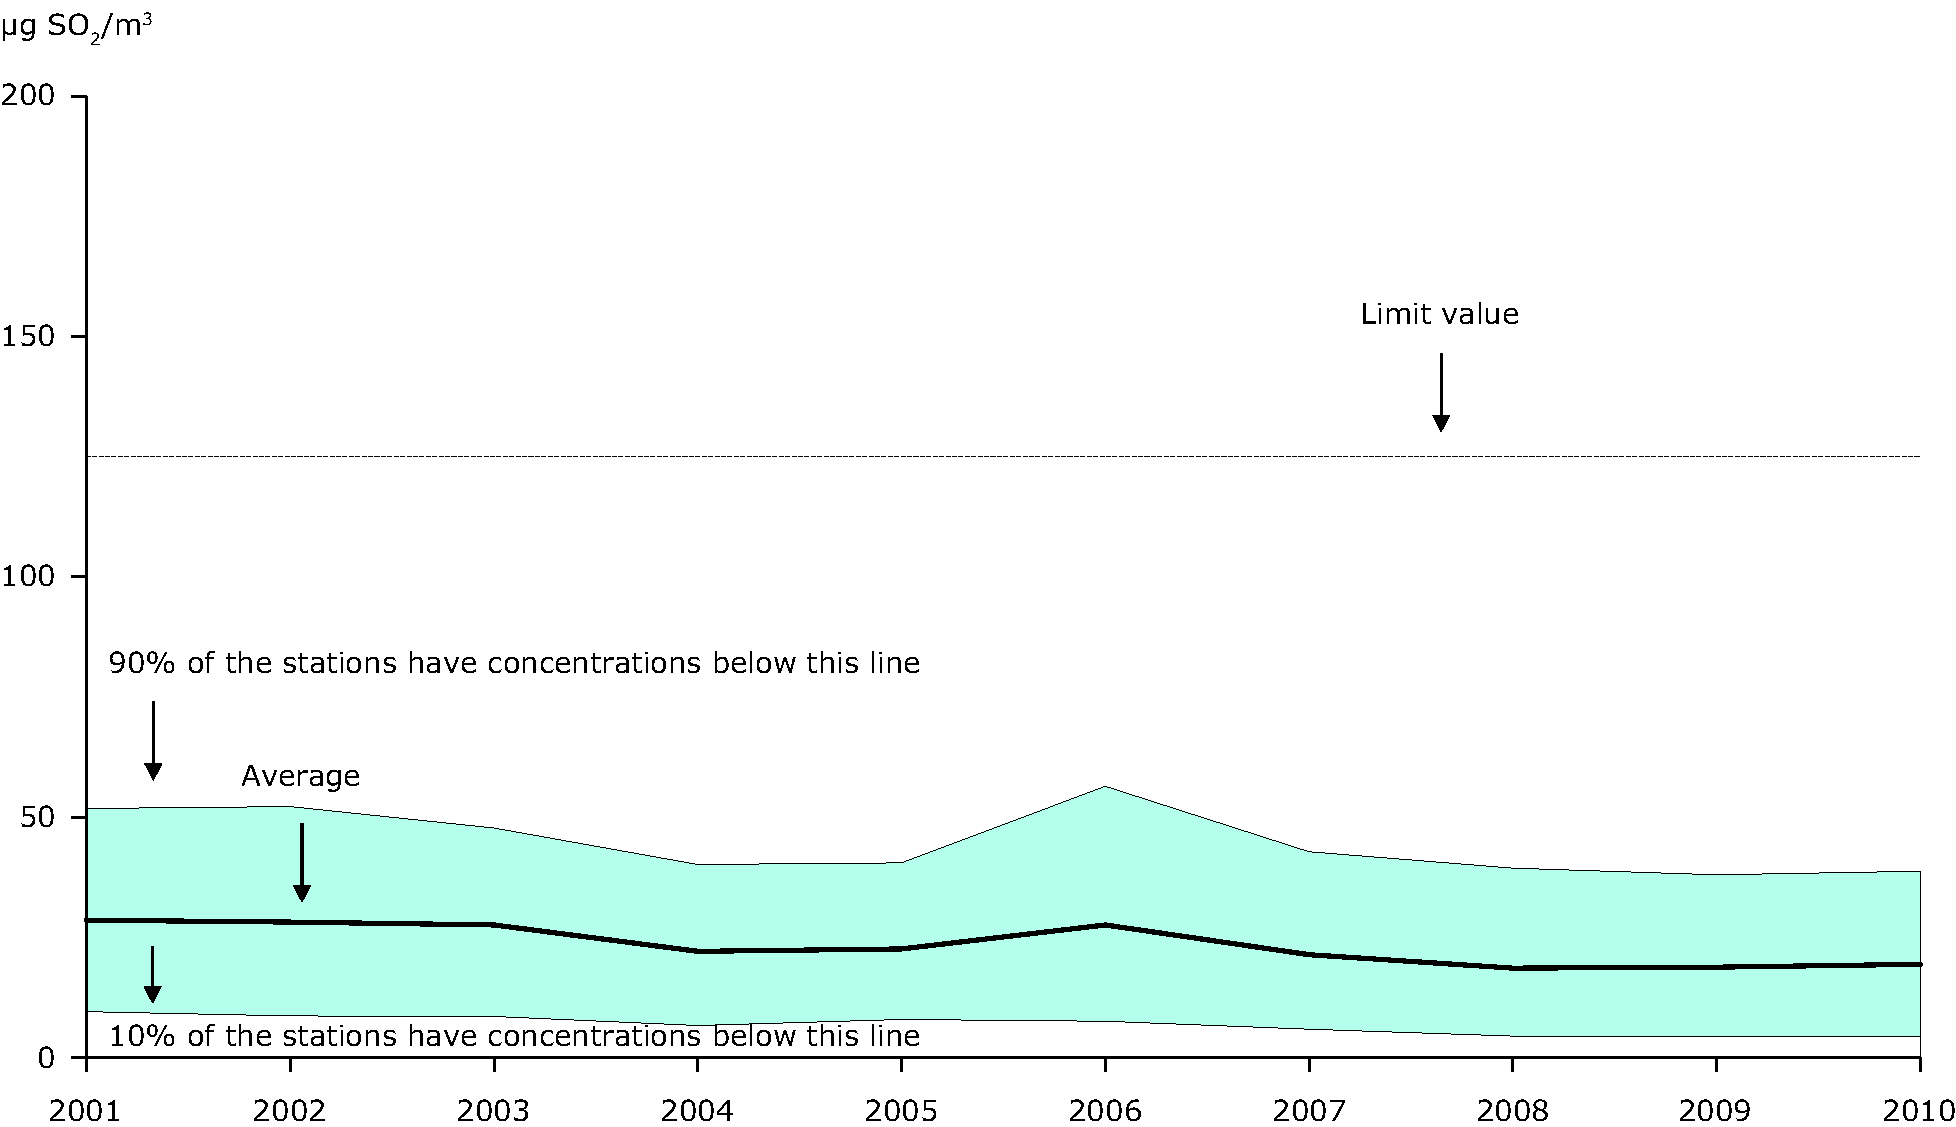 4th highest 24-hour mean SO2 concentration observed at urban stations, 2001-2010 (EU-27)